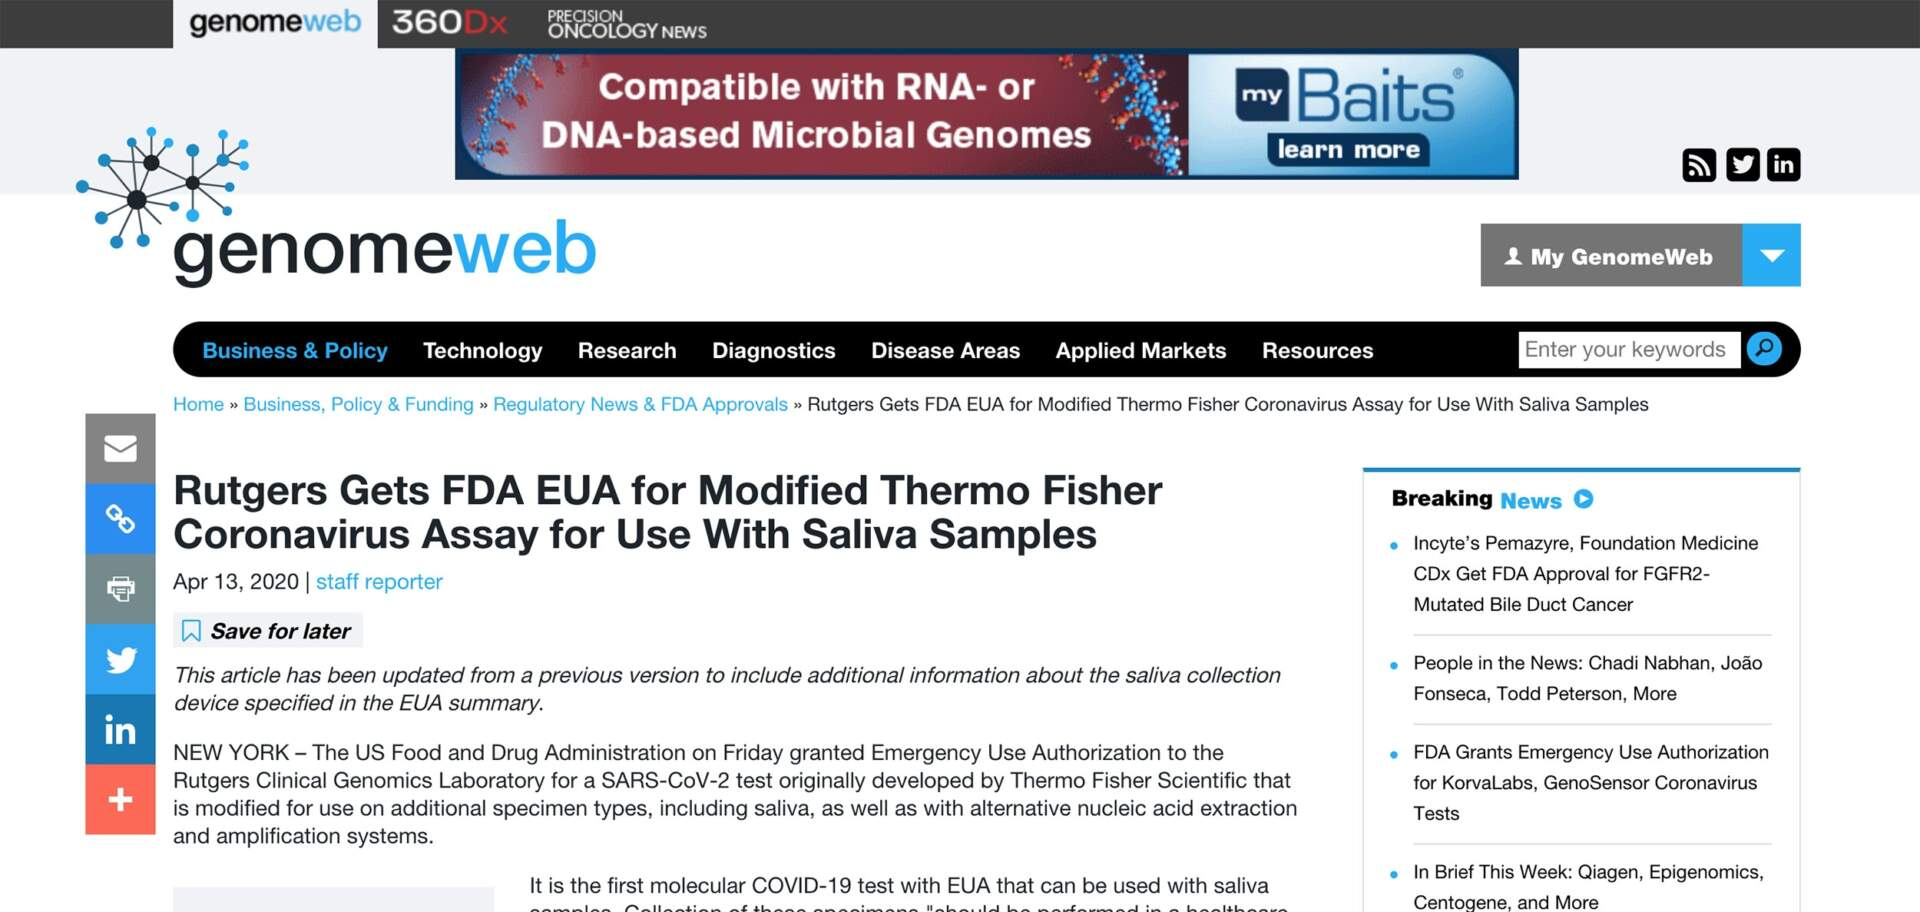 Genomeweb-FDA EUA for Coronavirus Assay for Using Saliva Samples with Spectrum Solutions